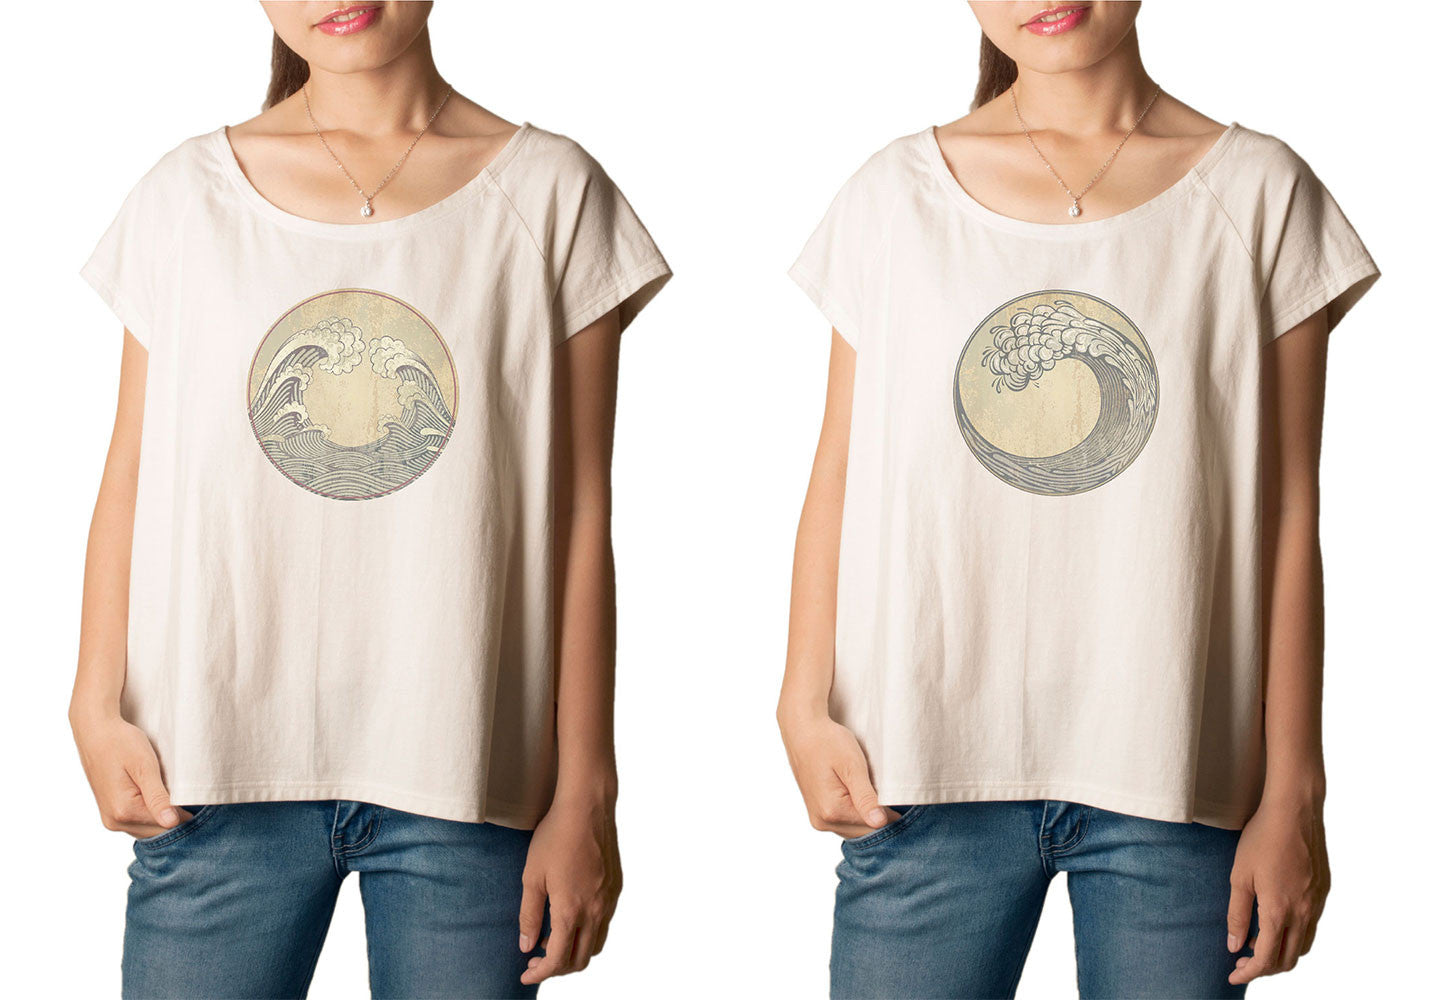 Women's  Ocean Waves Printed cotton T-shirt  Tee WTS_01